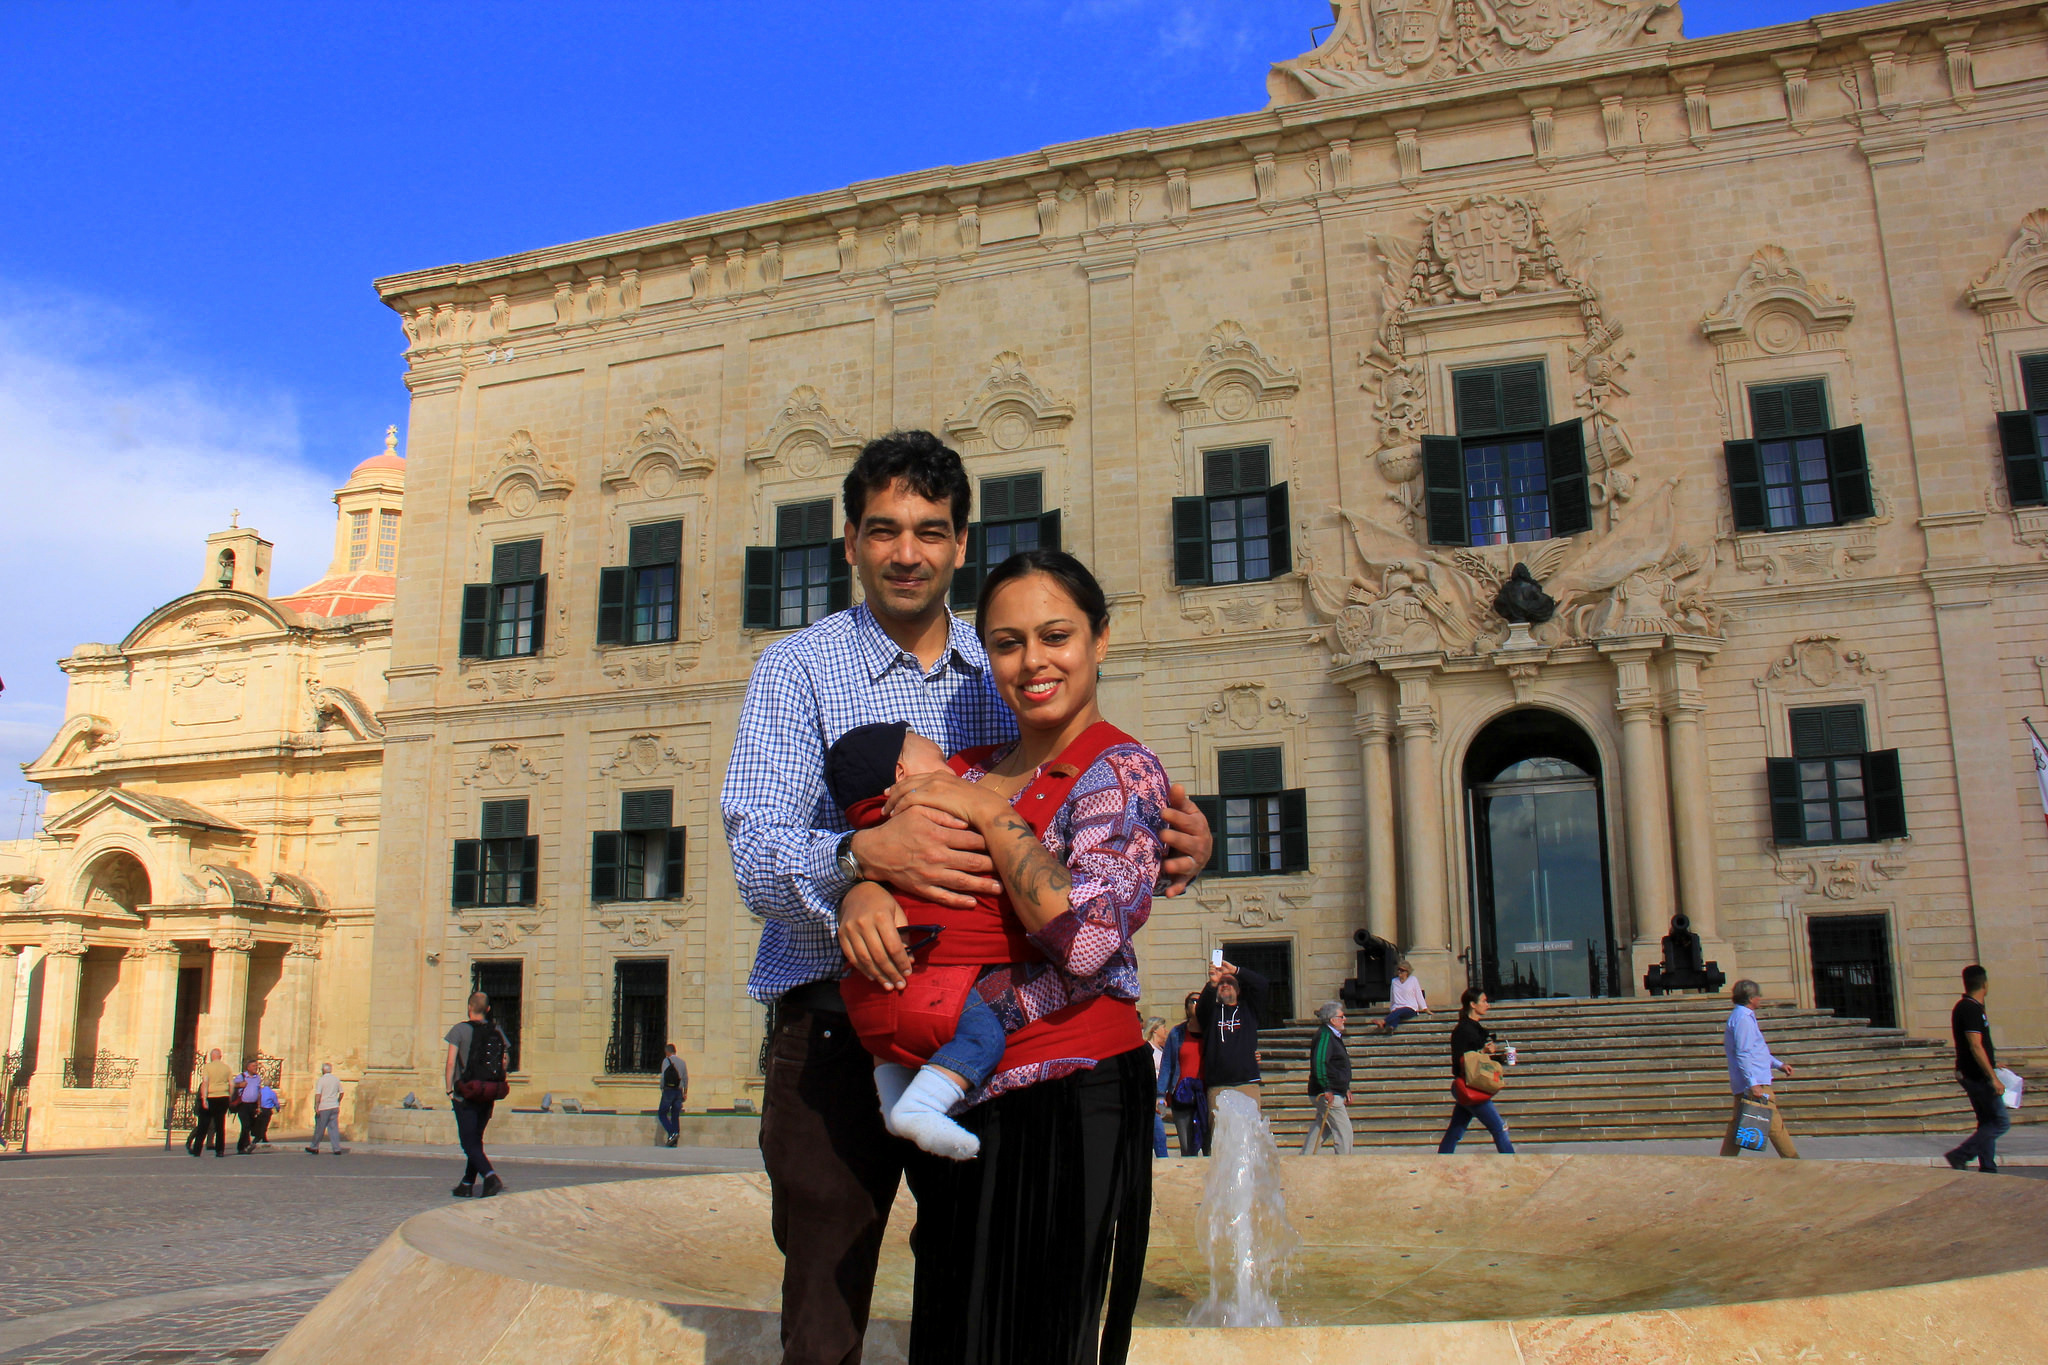 Valetta is the capital city of Malta